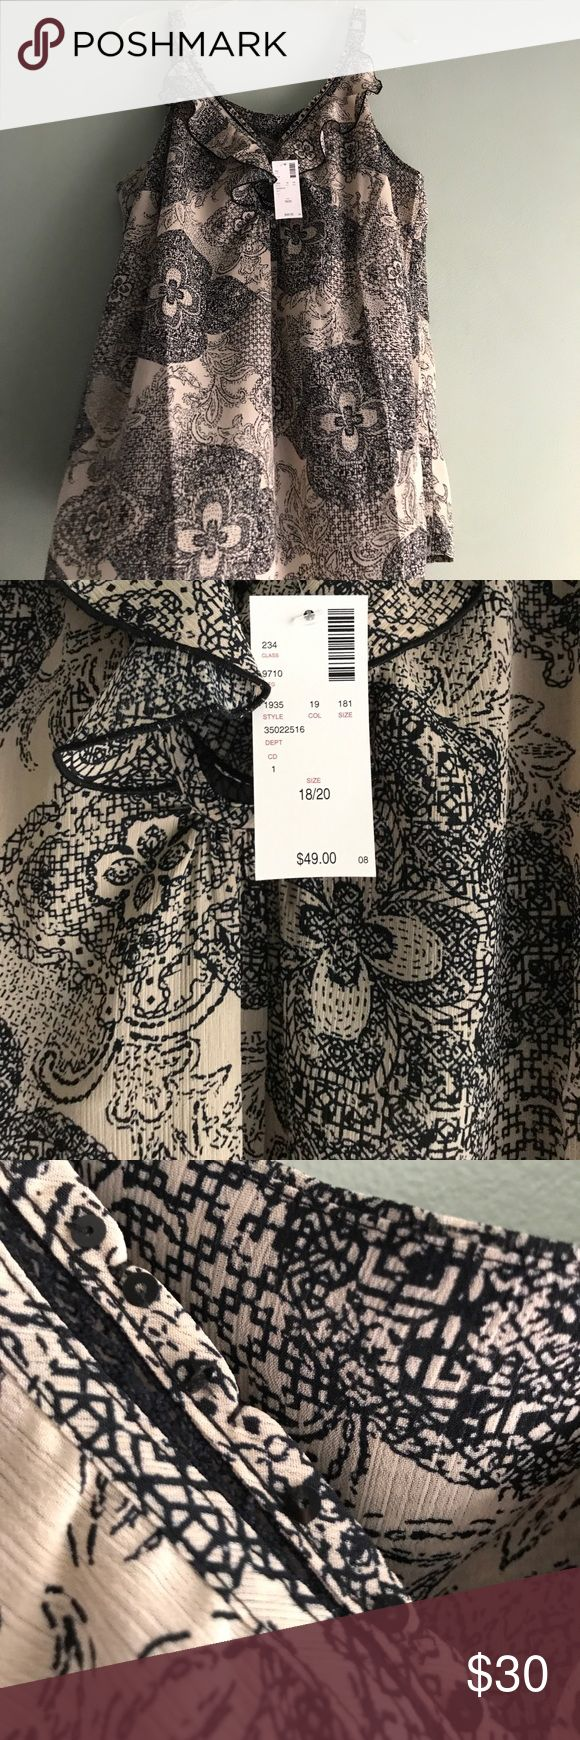 NWT black/cream plus size camisole. Great print This is a beautiful brand new black/beige ruffled camisole with a sequined v neck. Would look great with jeans, capris or even under a suit jacket.  NWT size 18/20 Avenue Tops Blouses